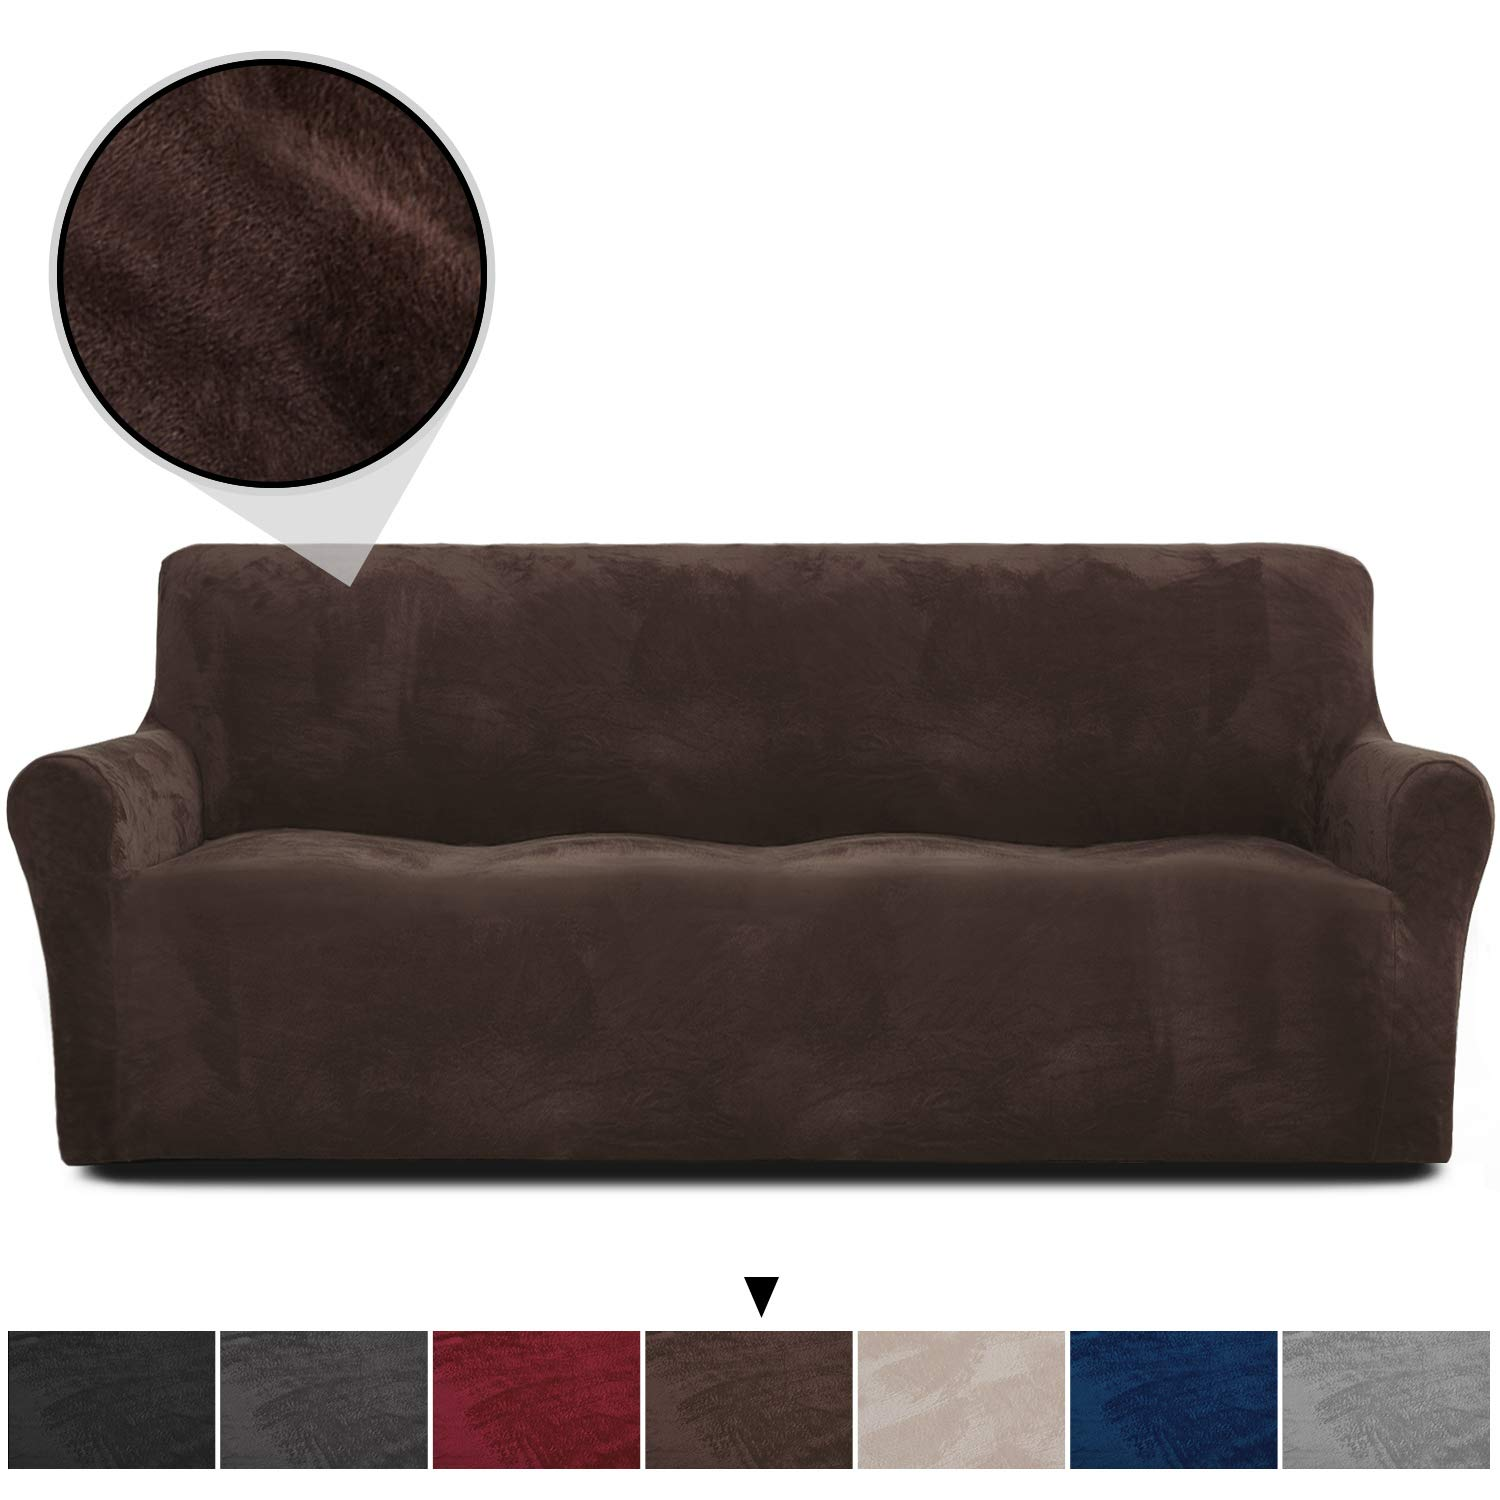 Astonishing Rose Home Fashion Rhf Velvet Sofa Slipcover Stretch Sofa Cover Slipcover For Leather Couch Polyester Spandex Sofa Slipcovercouch Cover For Dogs Gmtry Best Dining Table And Chair Ideas Images Gmtryco